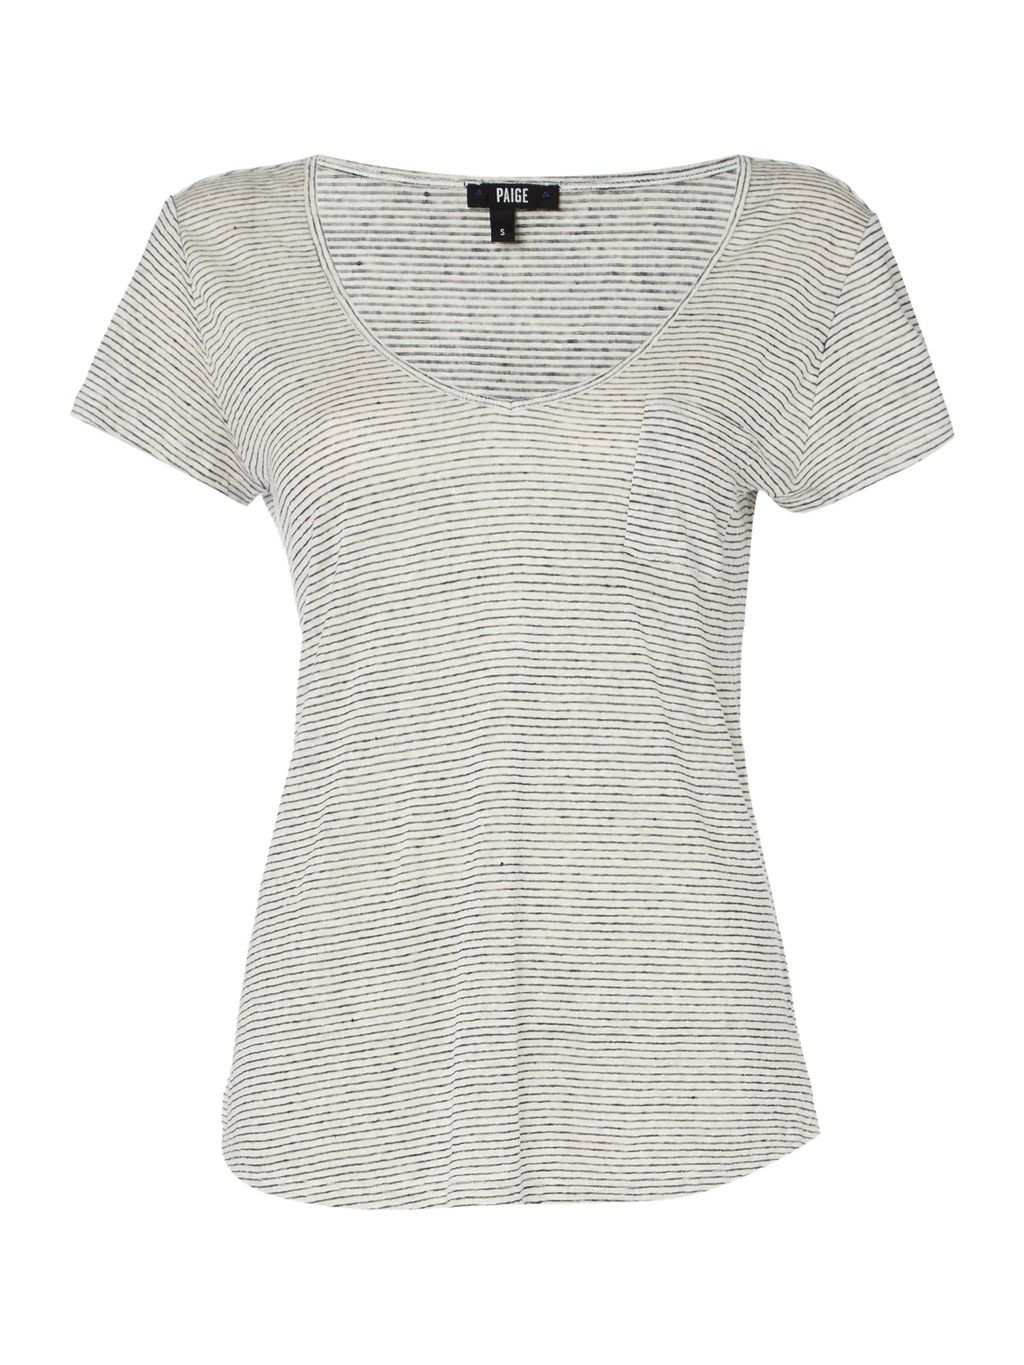 Short Sleeve Lynnea Tee, White - pattern: plain; style: t-shirt; predominant colour: light grey; occasions: casual; length: standard; neckline: scoop; fibres: polyester/polyamide - 100%; fit: body skimming; sleeve length: short sleeve; sleeve style: standard; pattern type: fabric; texture group: other - light to midweight; season: s/s 2016; wardrobe: basic